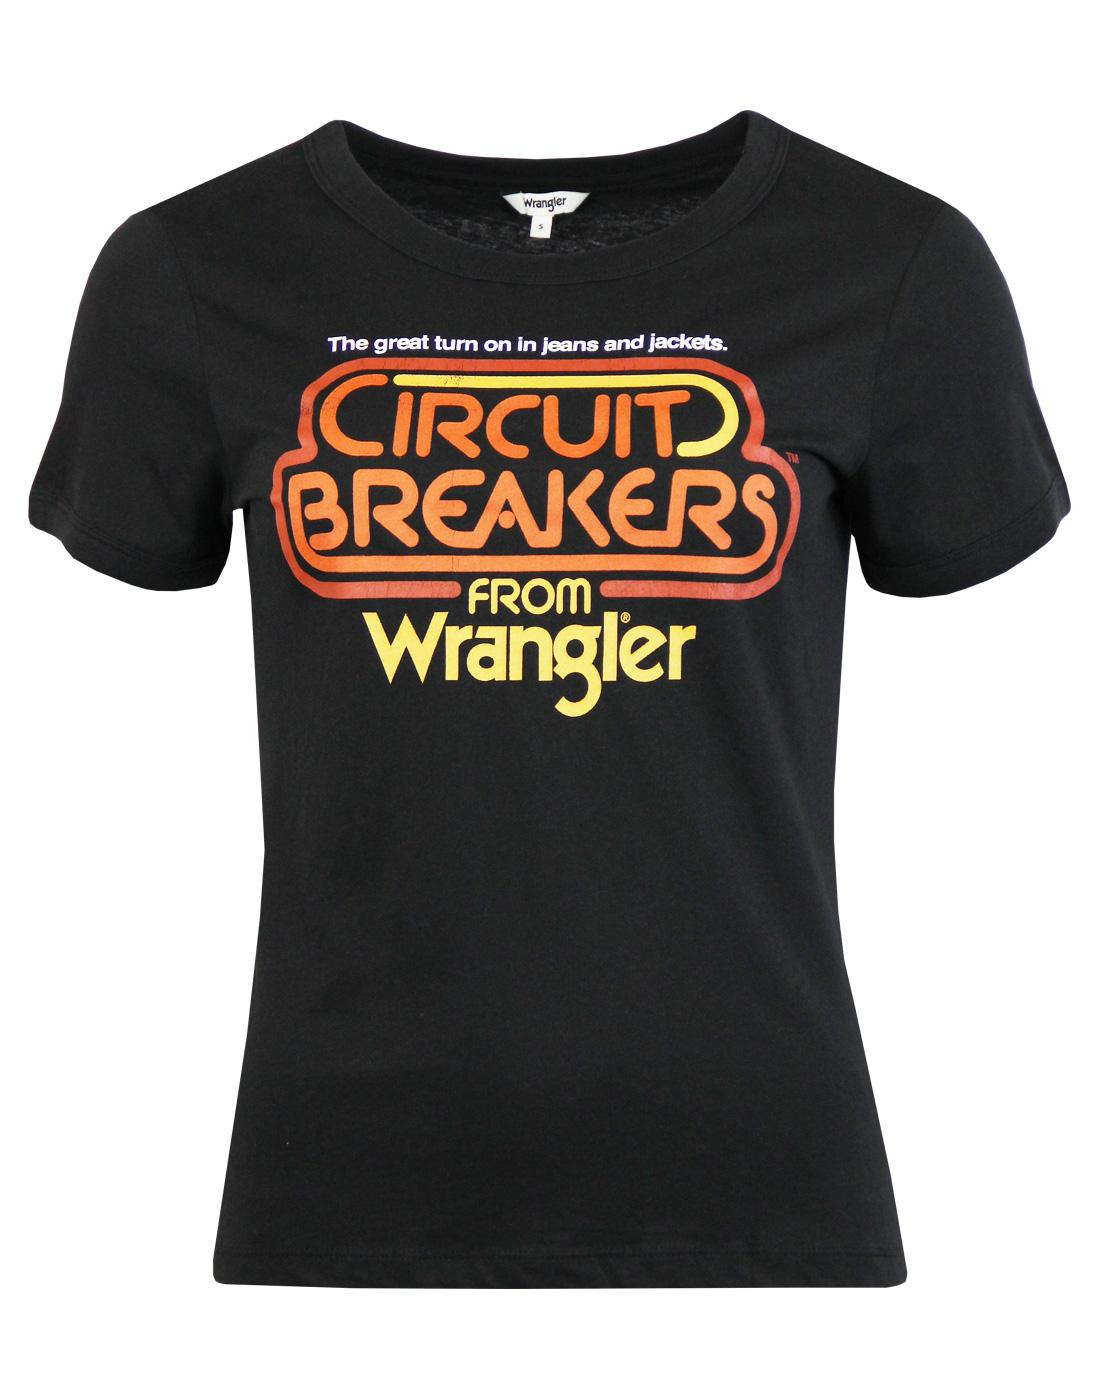 Circuit Breaker WRANGLER Women's Retro 70s T-Shirt